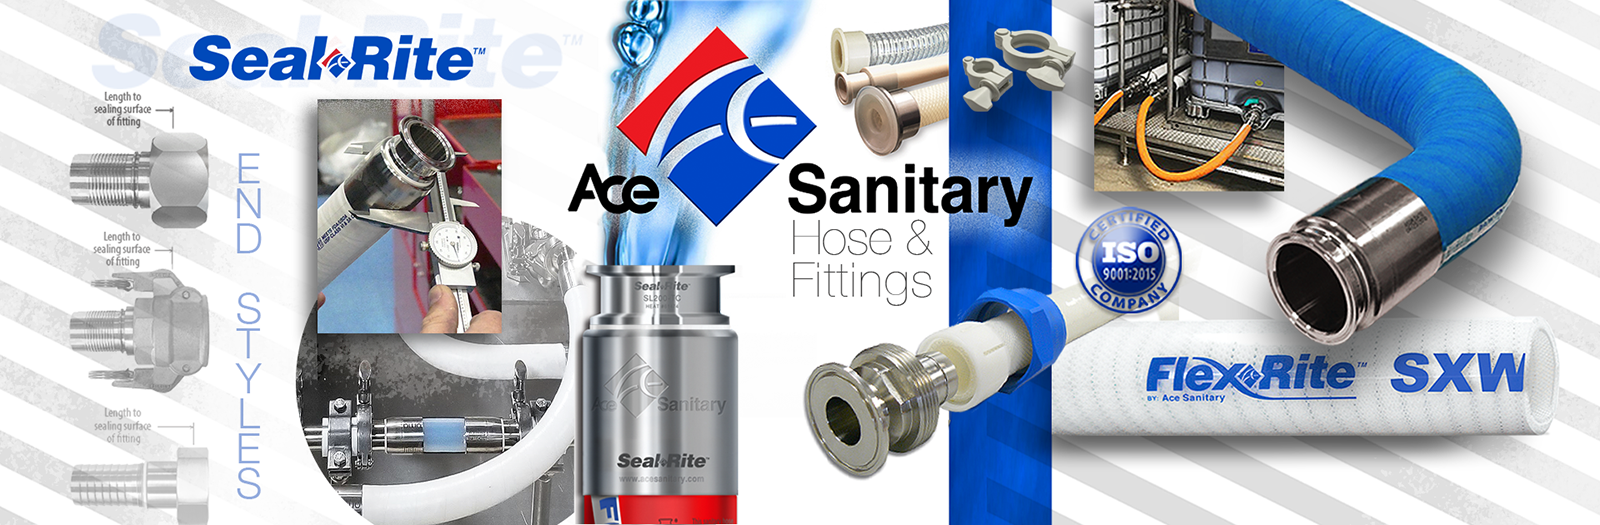 Ace Sanitary | Sanitary Hose - Fittings - Accessories - Equipment